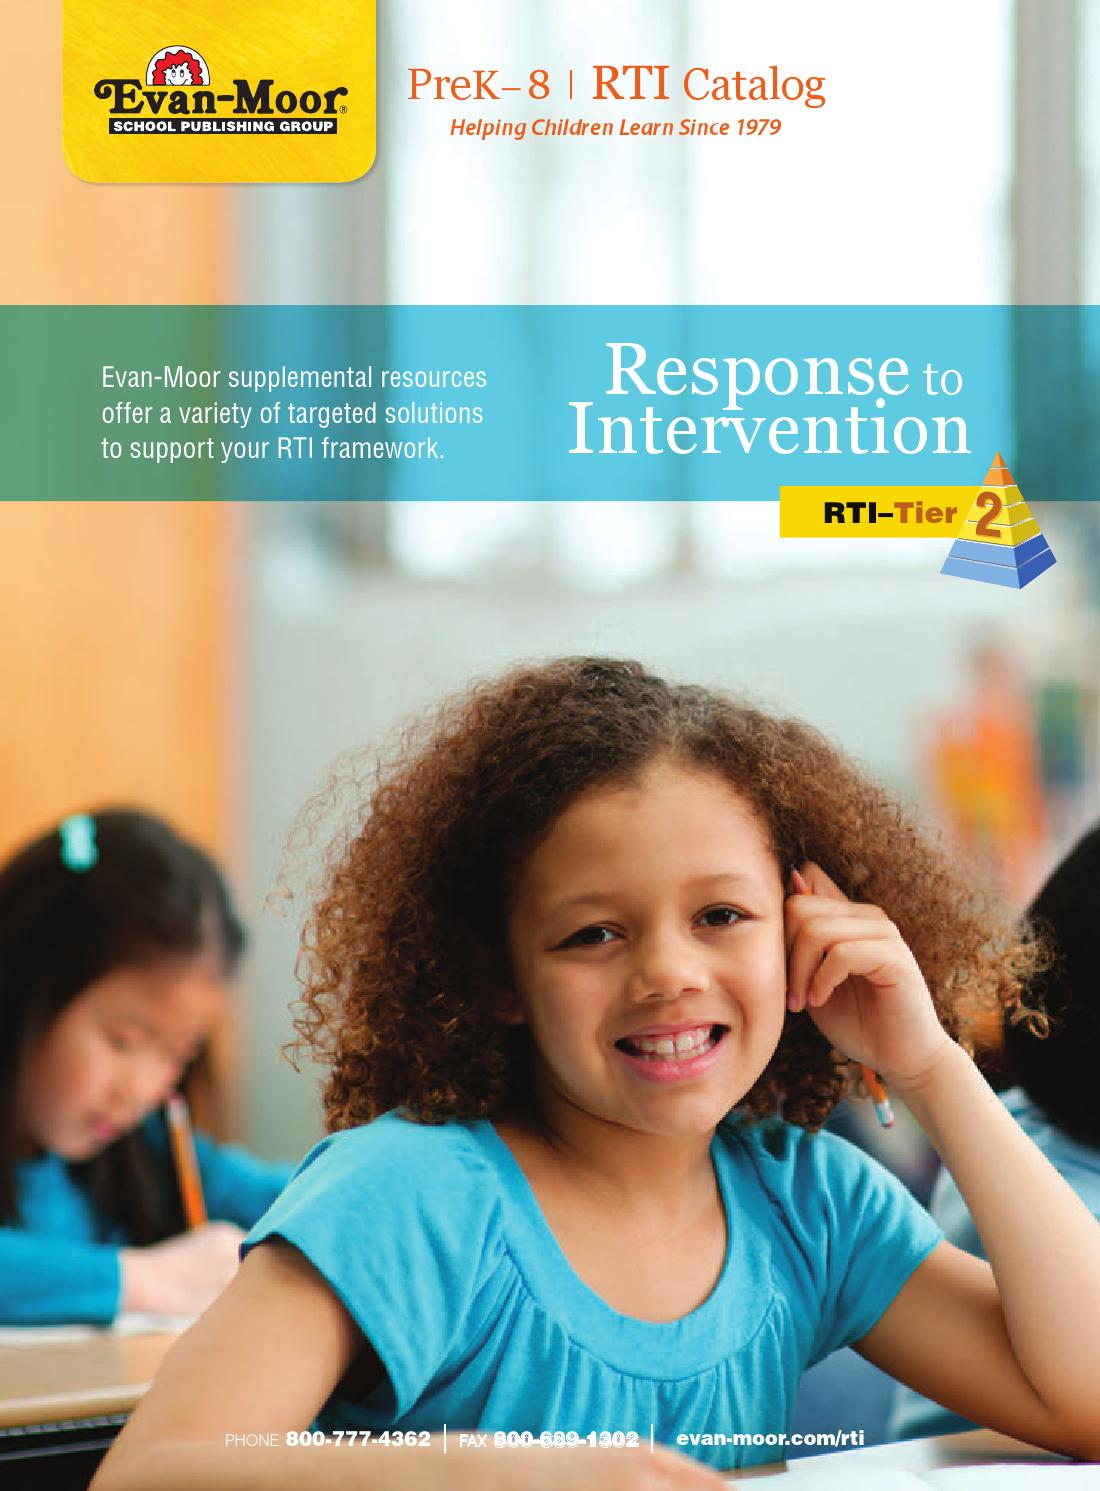 2013 Response to Intervention by Evan-Moor Educational